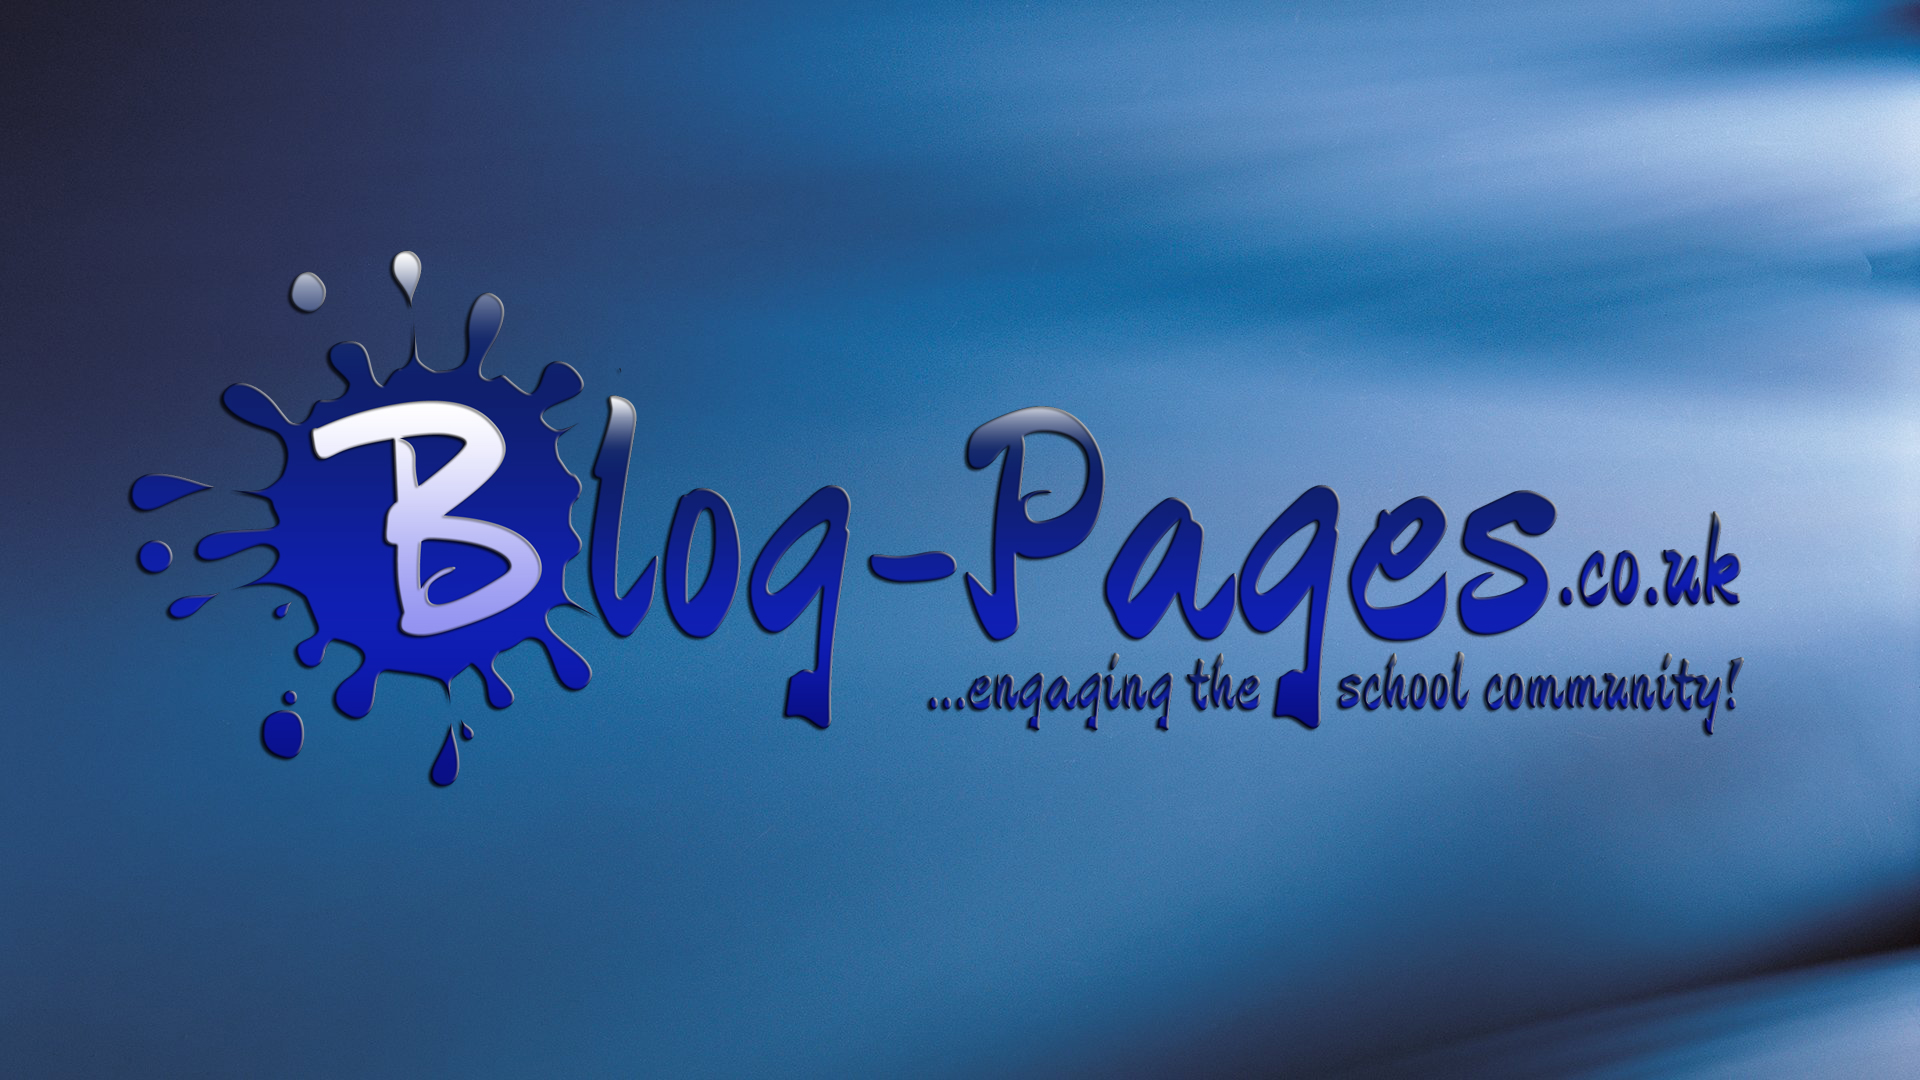 Blog-Pages.co.uk